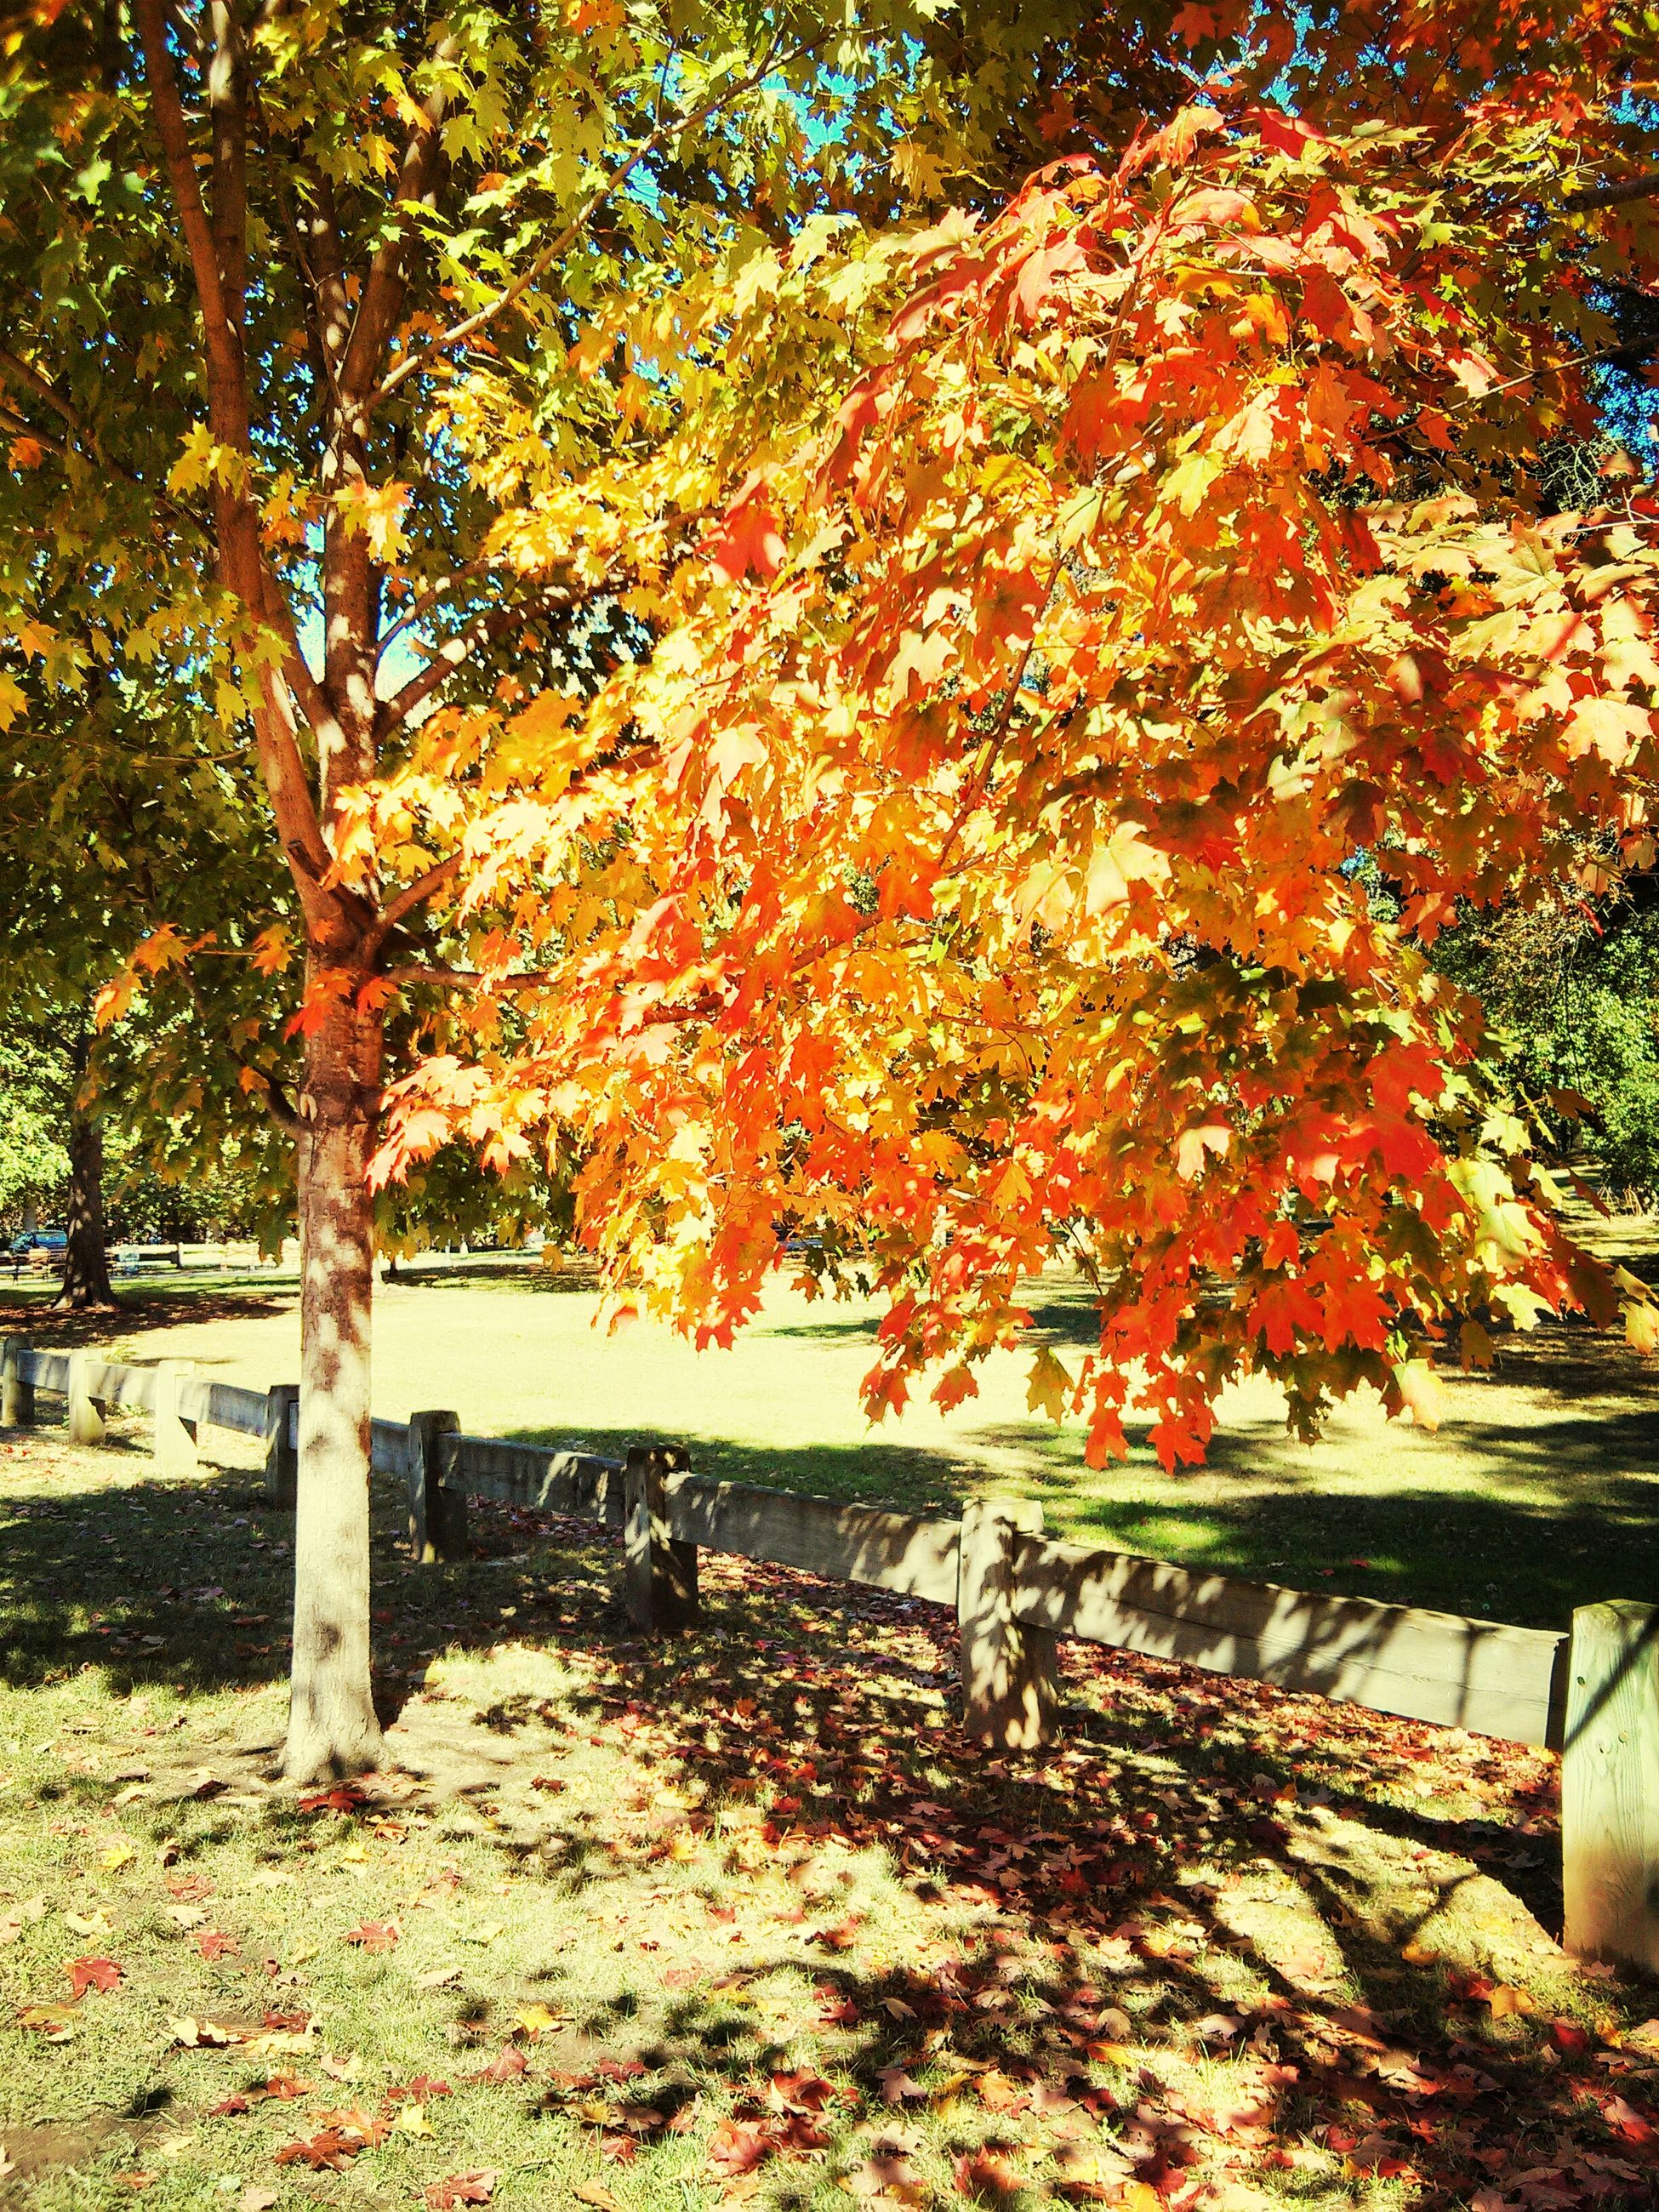 autumn, tree, change, season, leaf, orange color, growth, tranquility, branch, nature, beauty in nature, park - man made space, tree trunk, fallen, tranquil scene, park, scenics, day, bench, sunlight